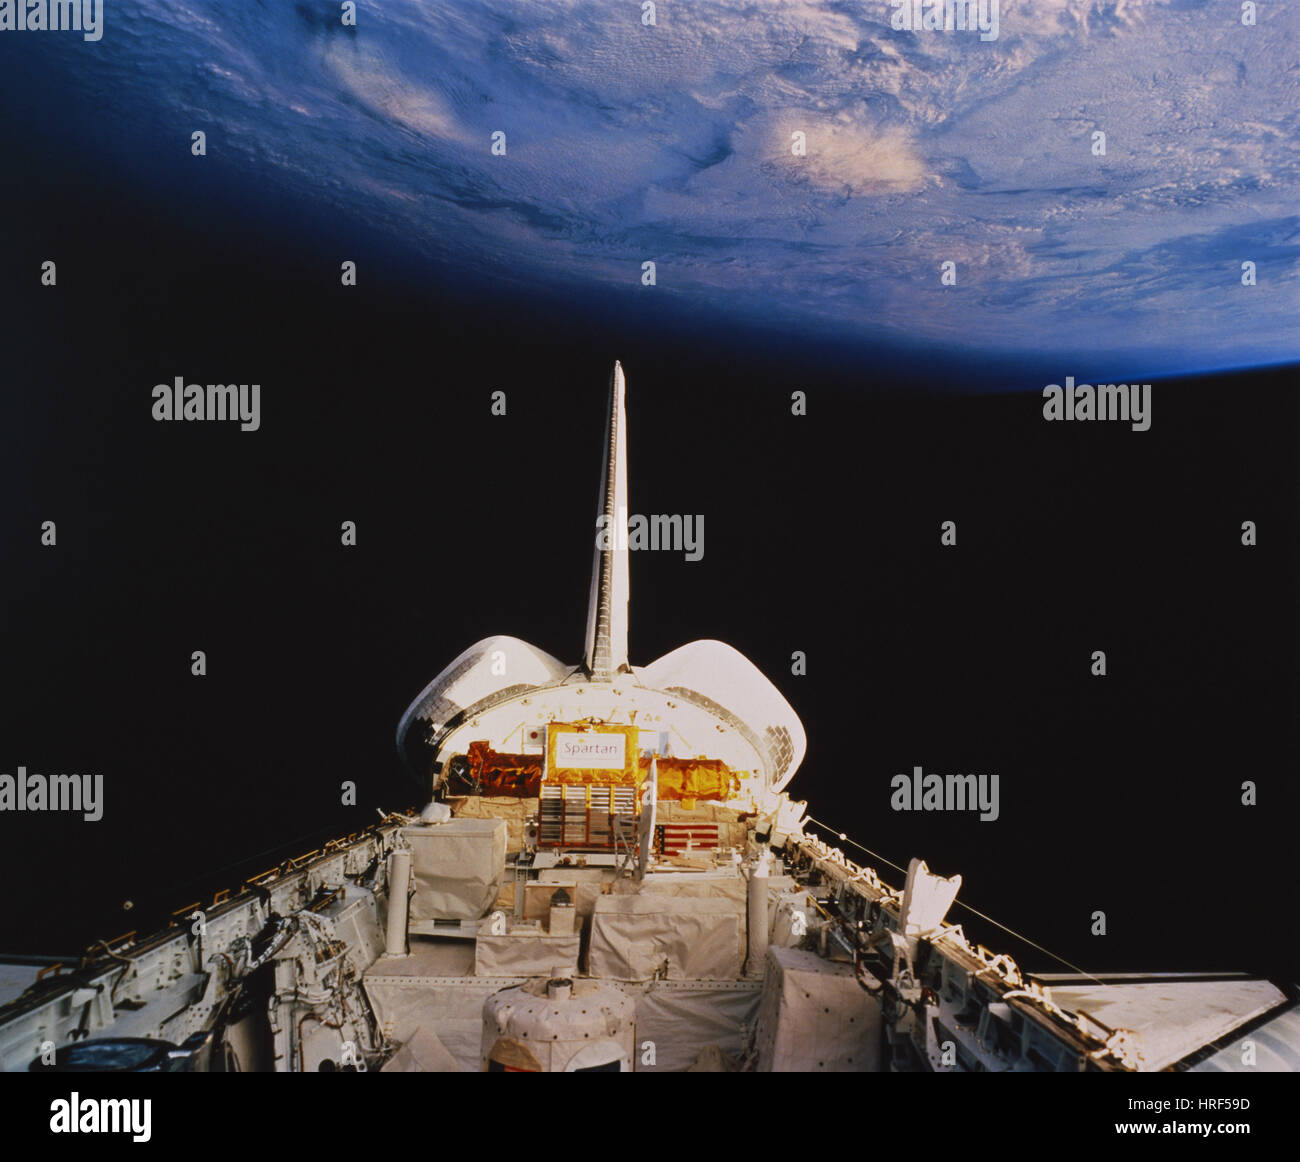 STS-56, Space Shuttle Discovery, 1993 - Stock Image